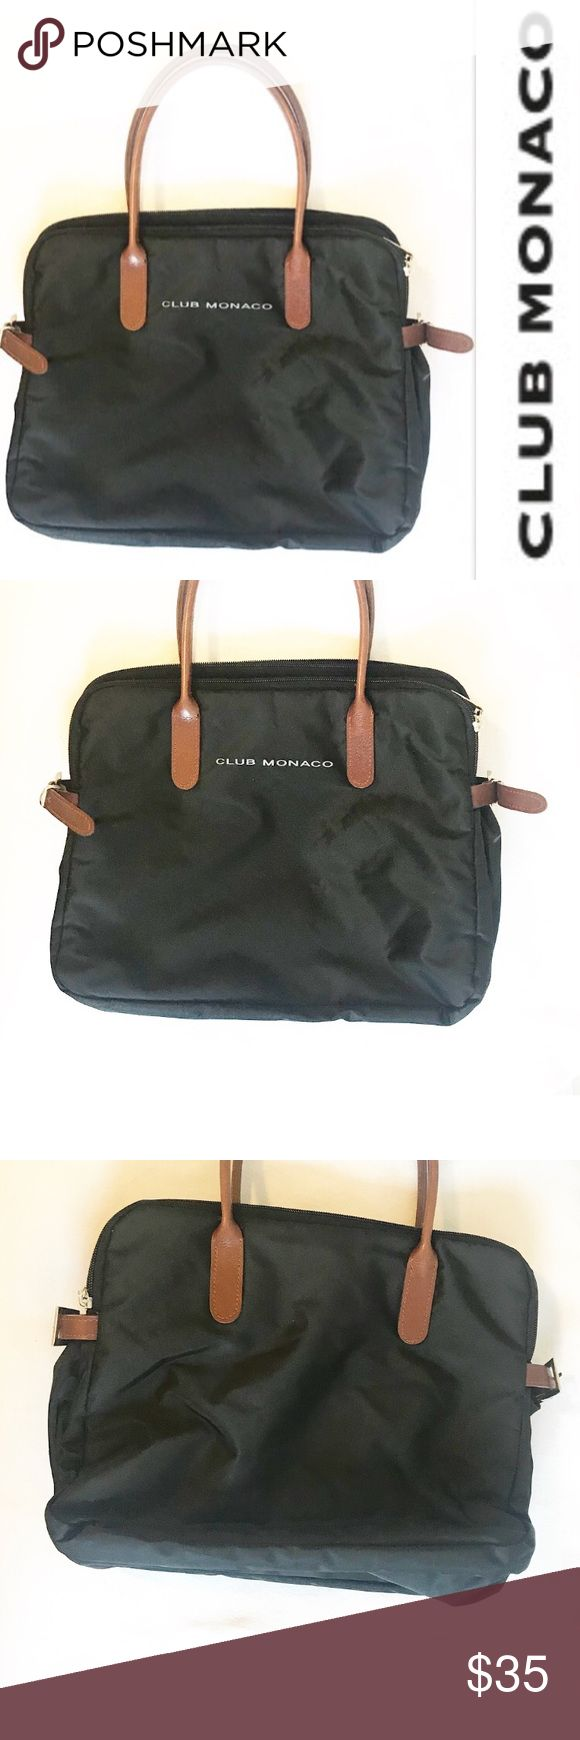 Club Monaco black nylon tote bag Club Monaco black nylon tote bag.  Plenty of storage, classic color and style.  This bag is pre-owned with minimal signs of wear.  Great staple piece for any wardrobe! Club Monaco Bags Shoulder Bags